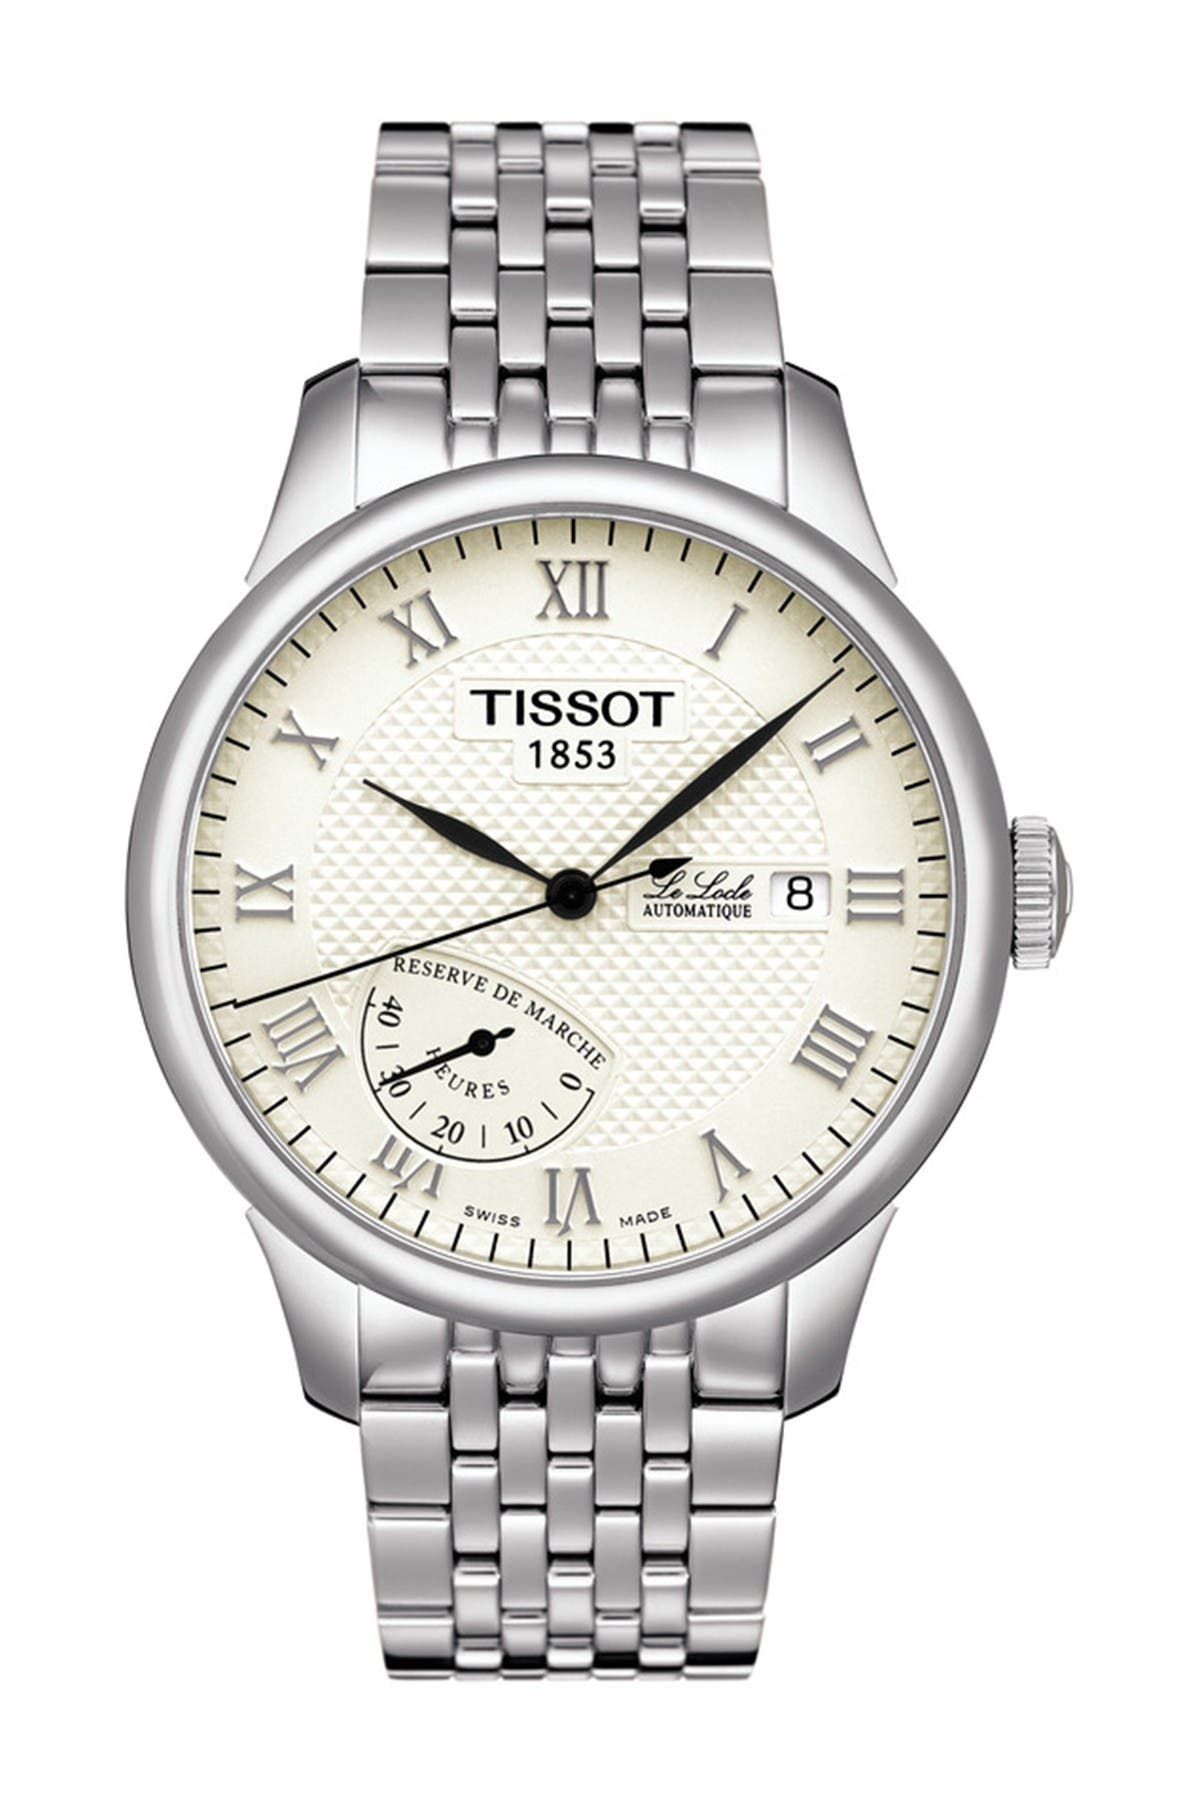 Image of Tissot Men's Le Locle Automatic R Watch, 39.3mm